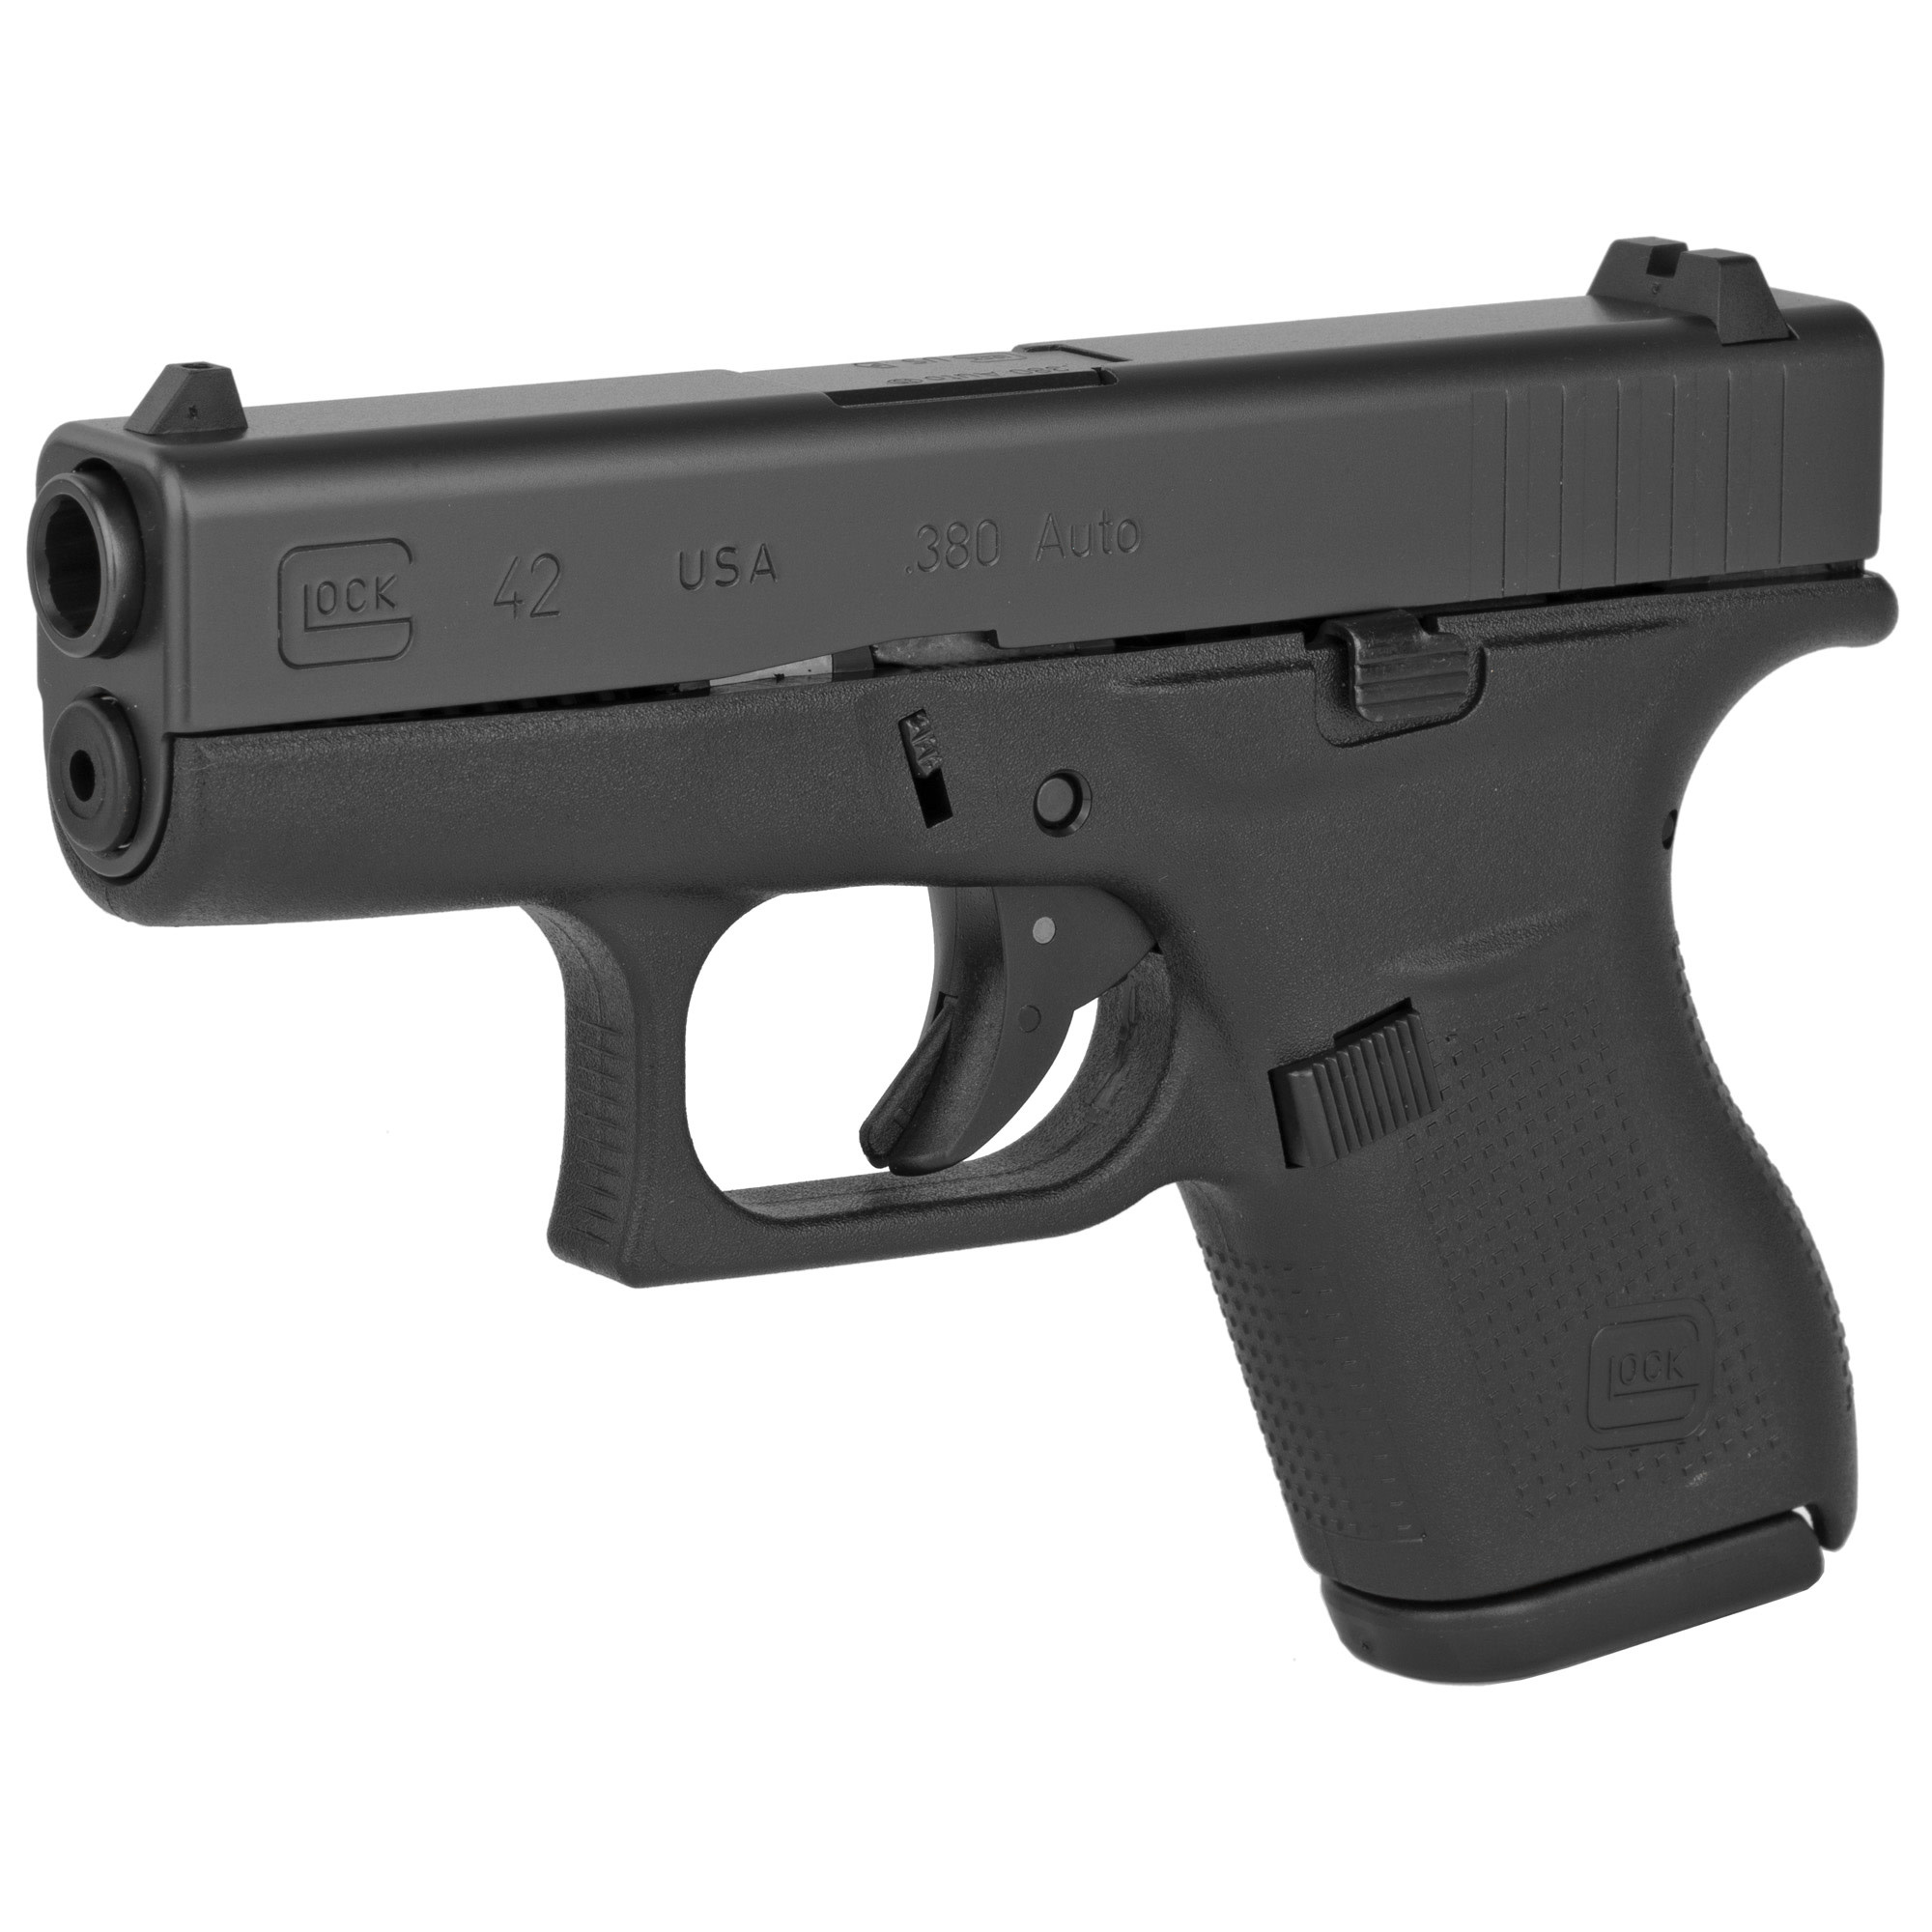 Glock 42 Gen 4, 380 acp, fixed sights, 6 rd, 2 mags